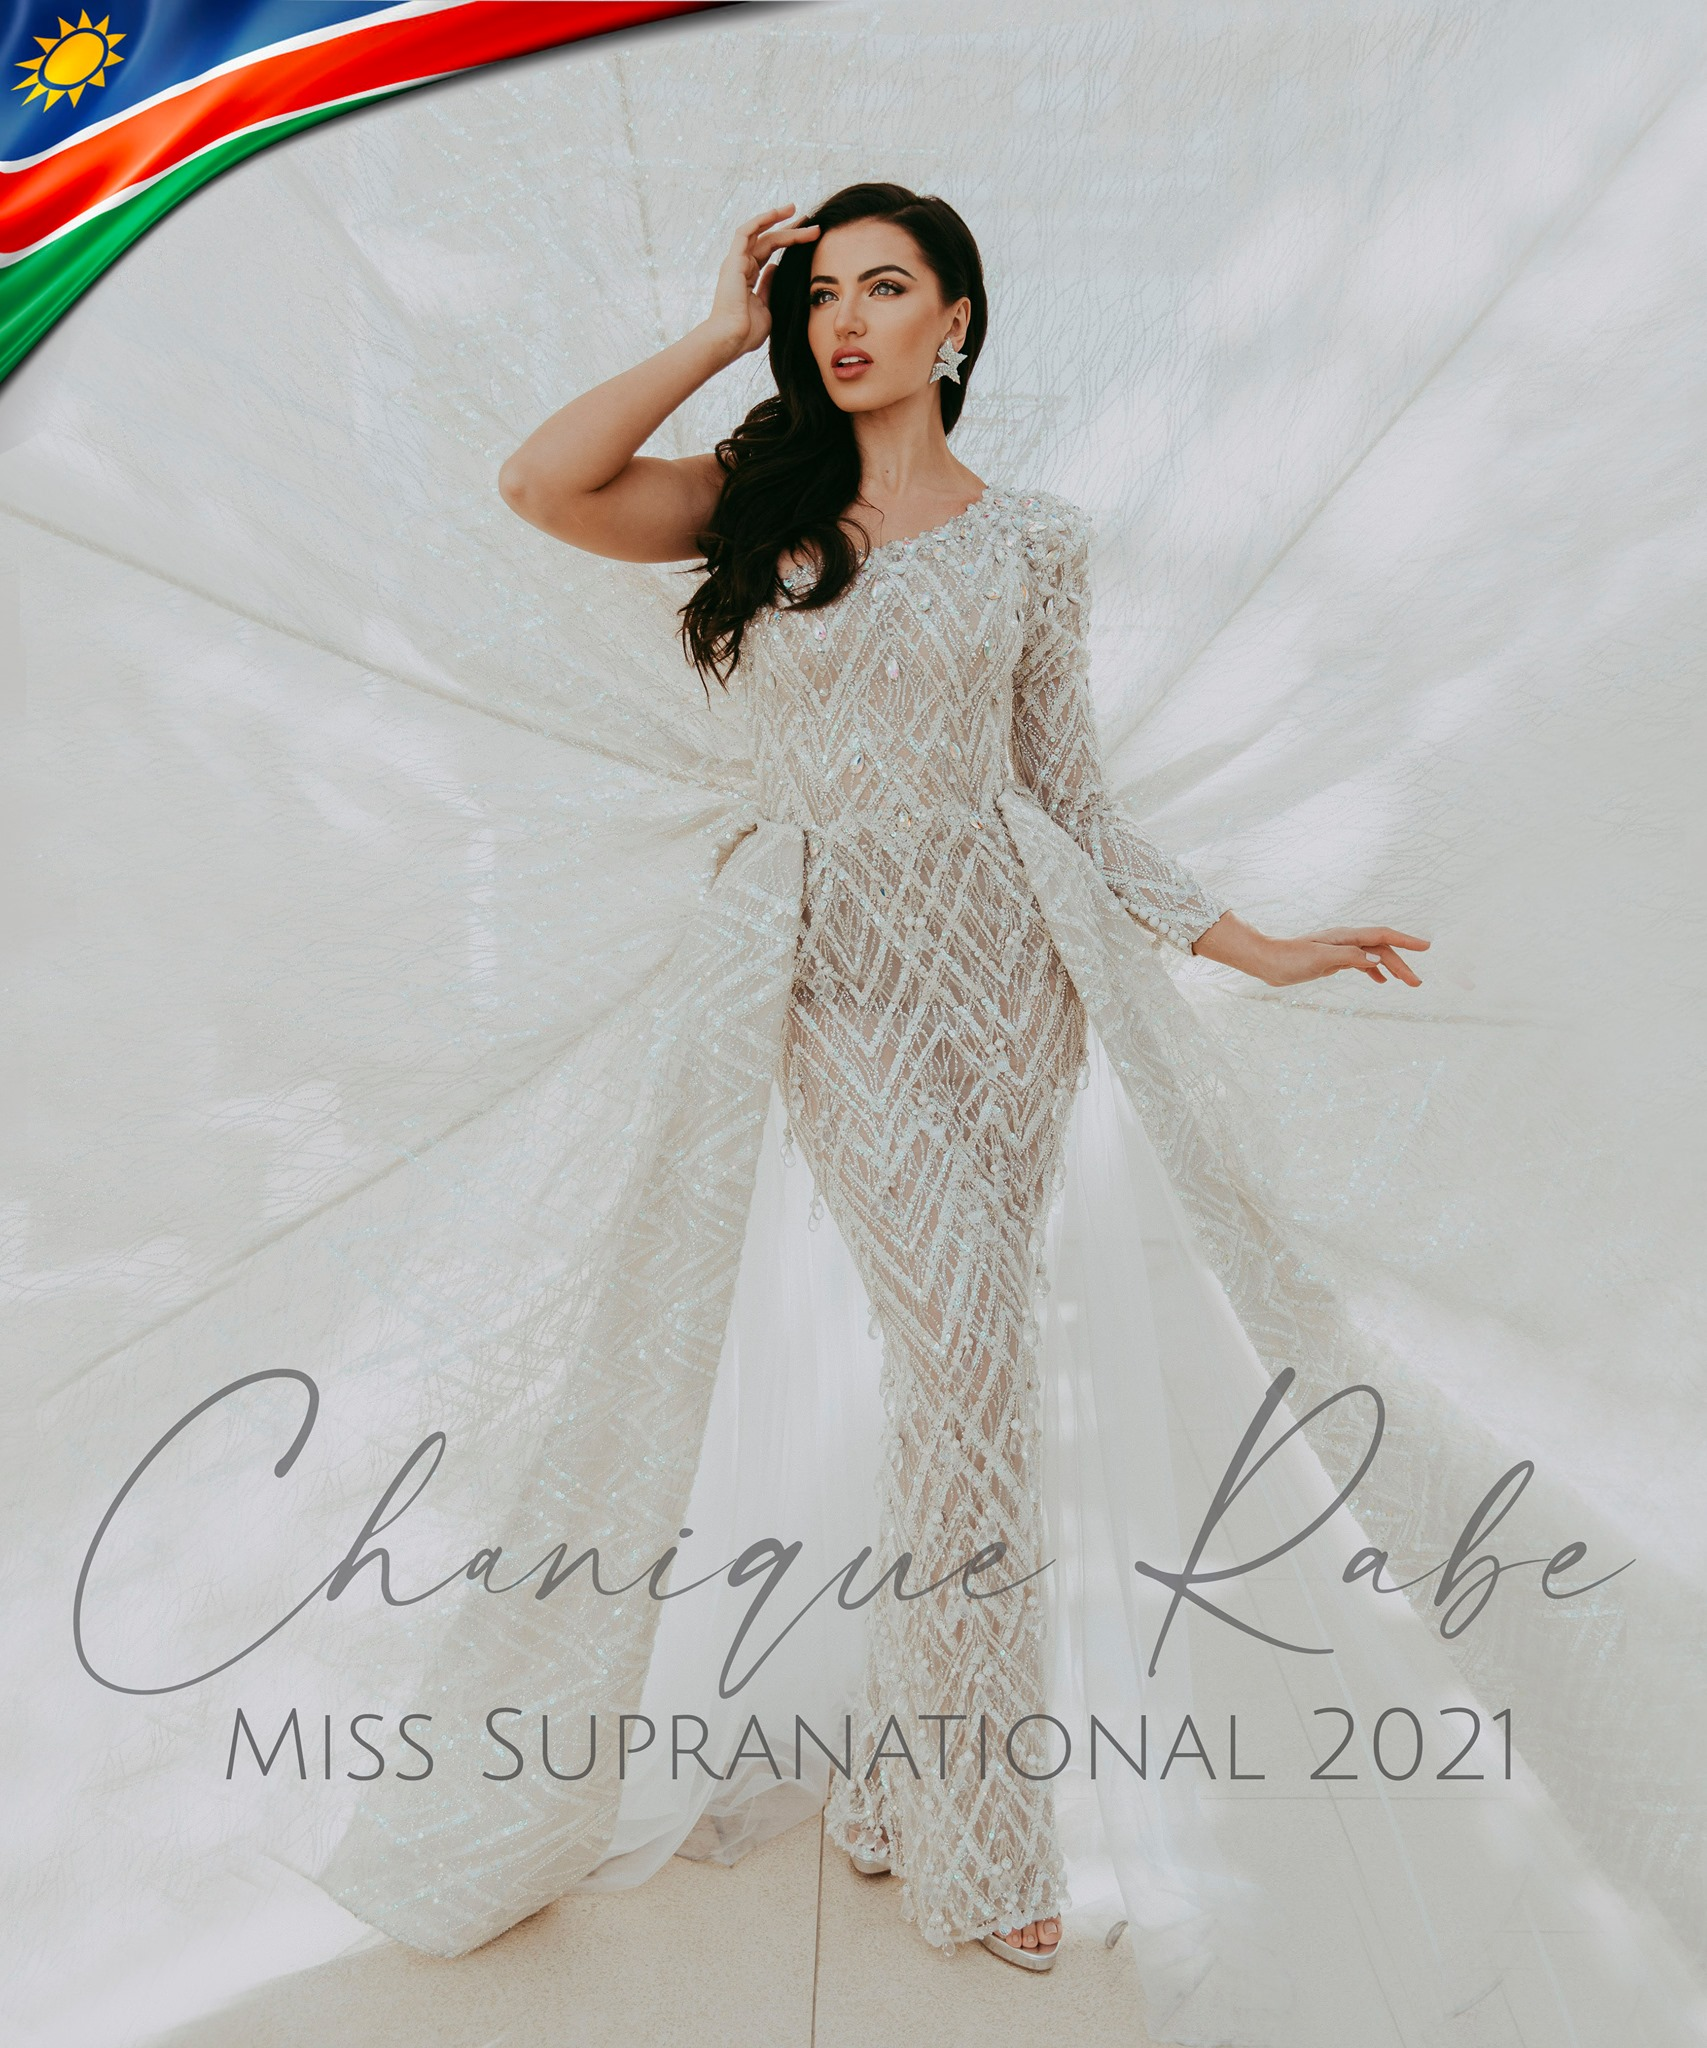 chanique rabe, miss supranational 2021. 23223517